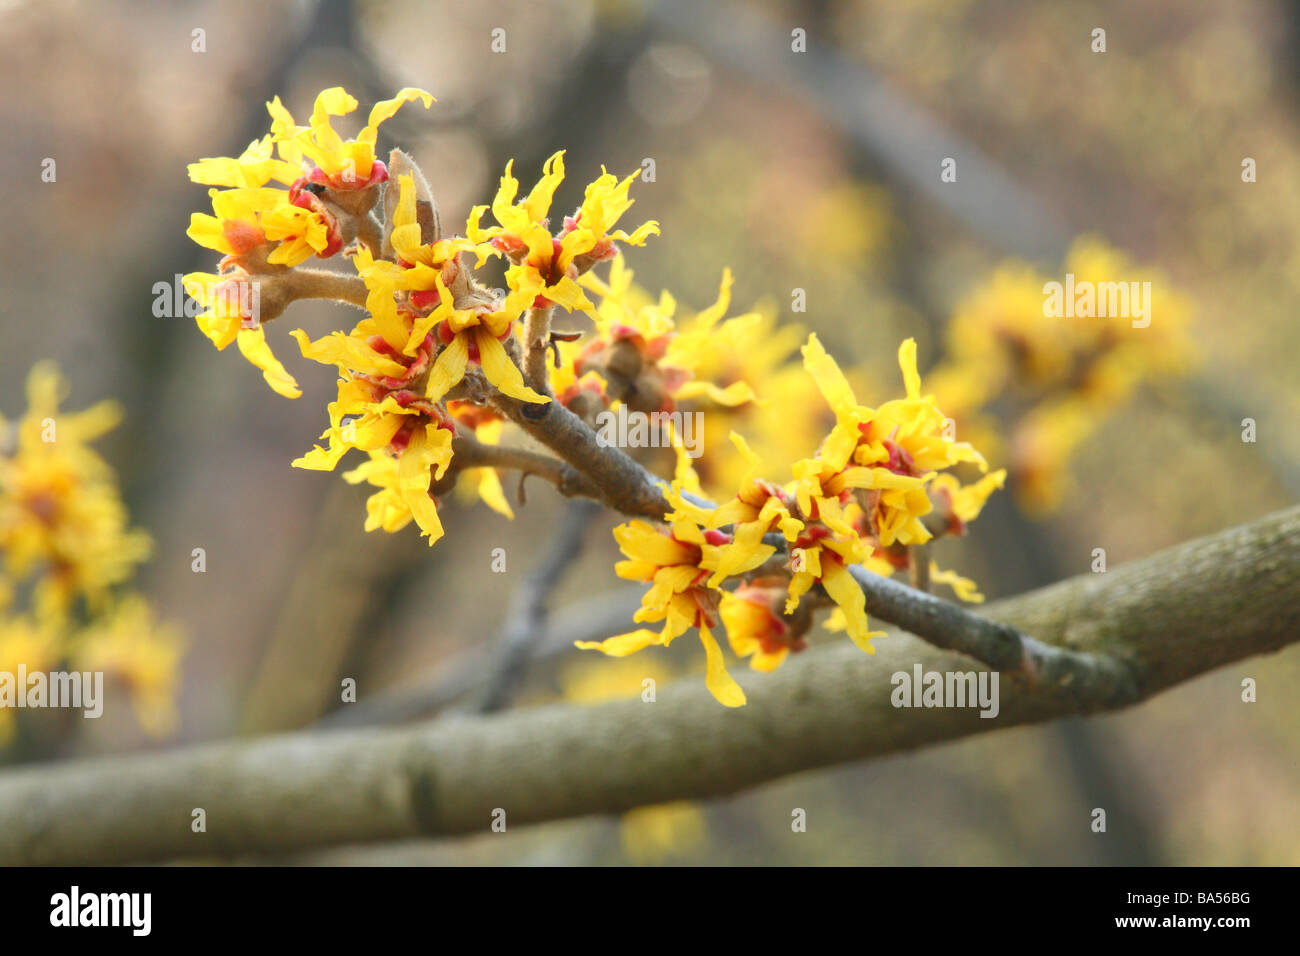 Witch hazel Hamamelis intermedia flowers close up - Stock Image